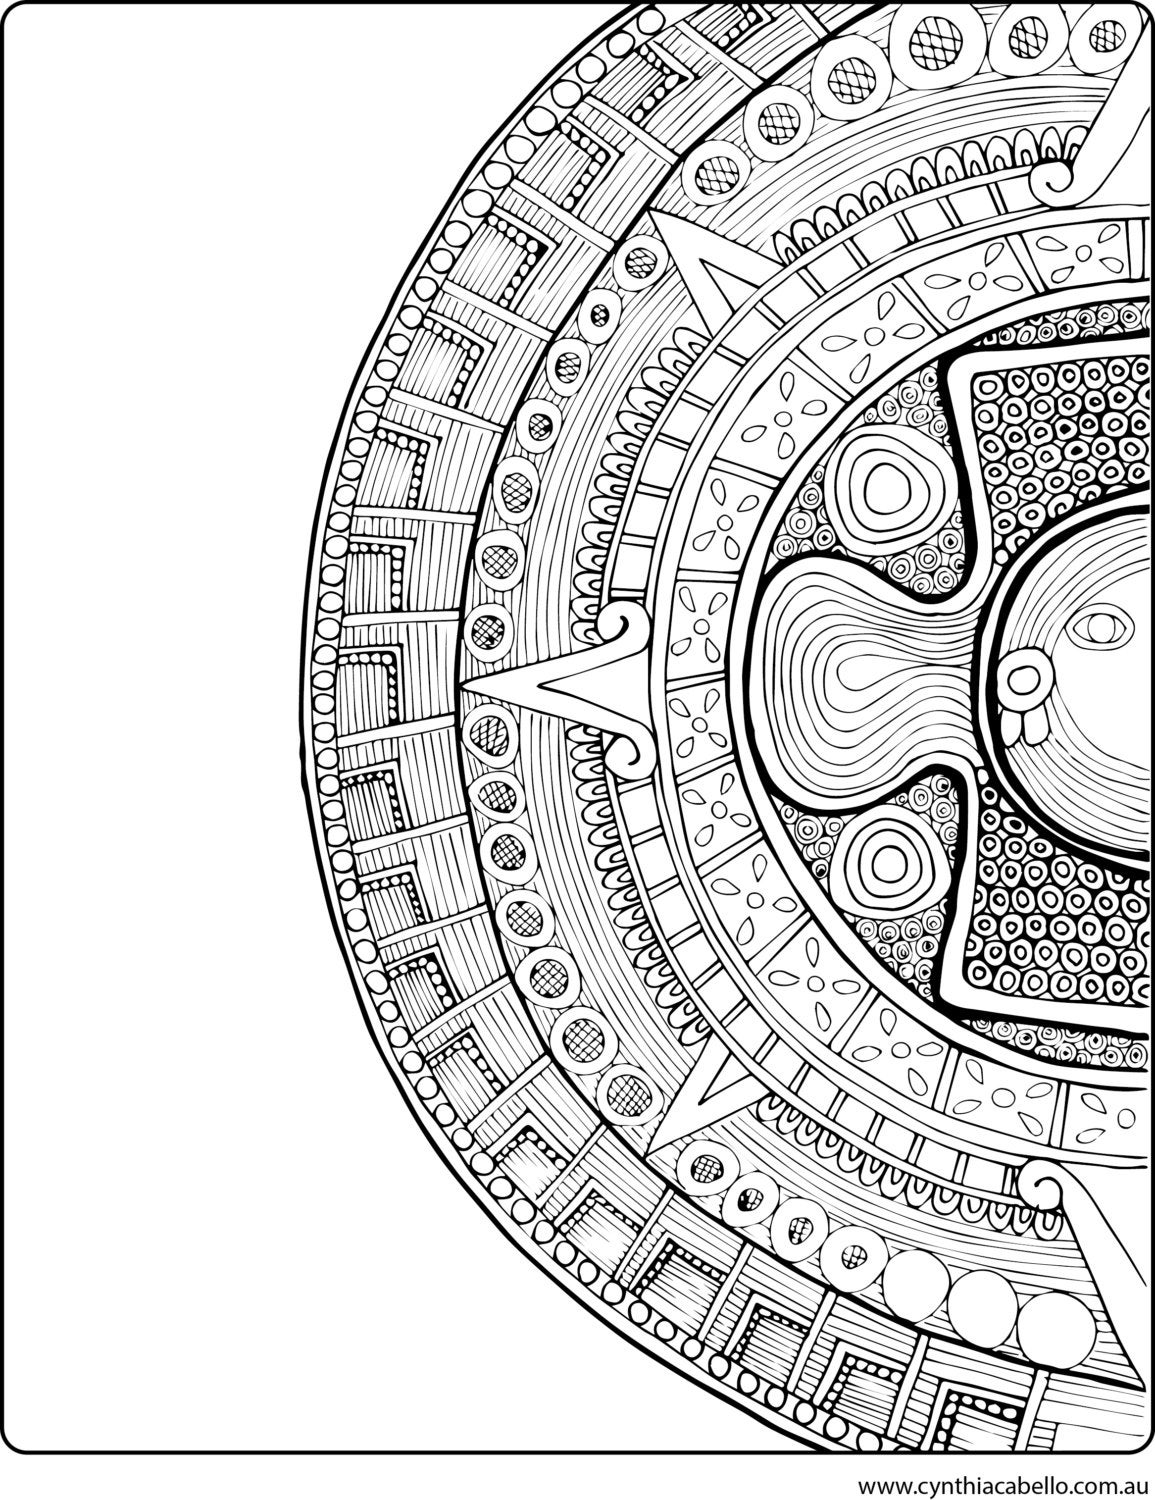 Aztec Coloring Pages Pdf : Coloring pages for adults aztec design by kalakita on etsy